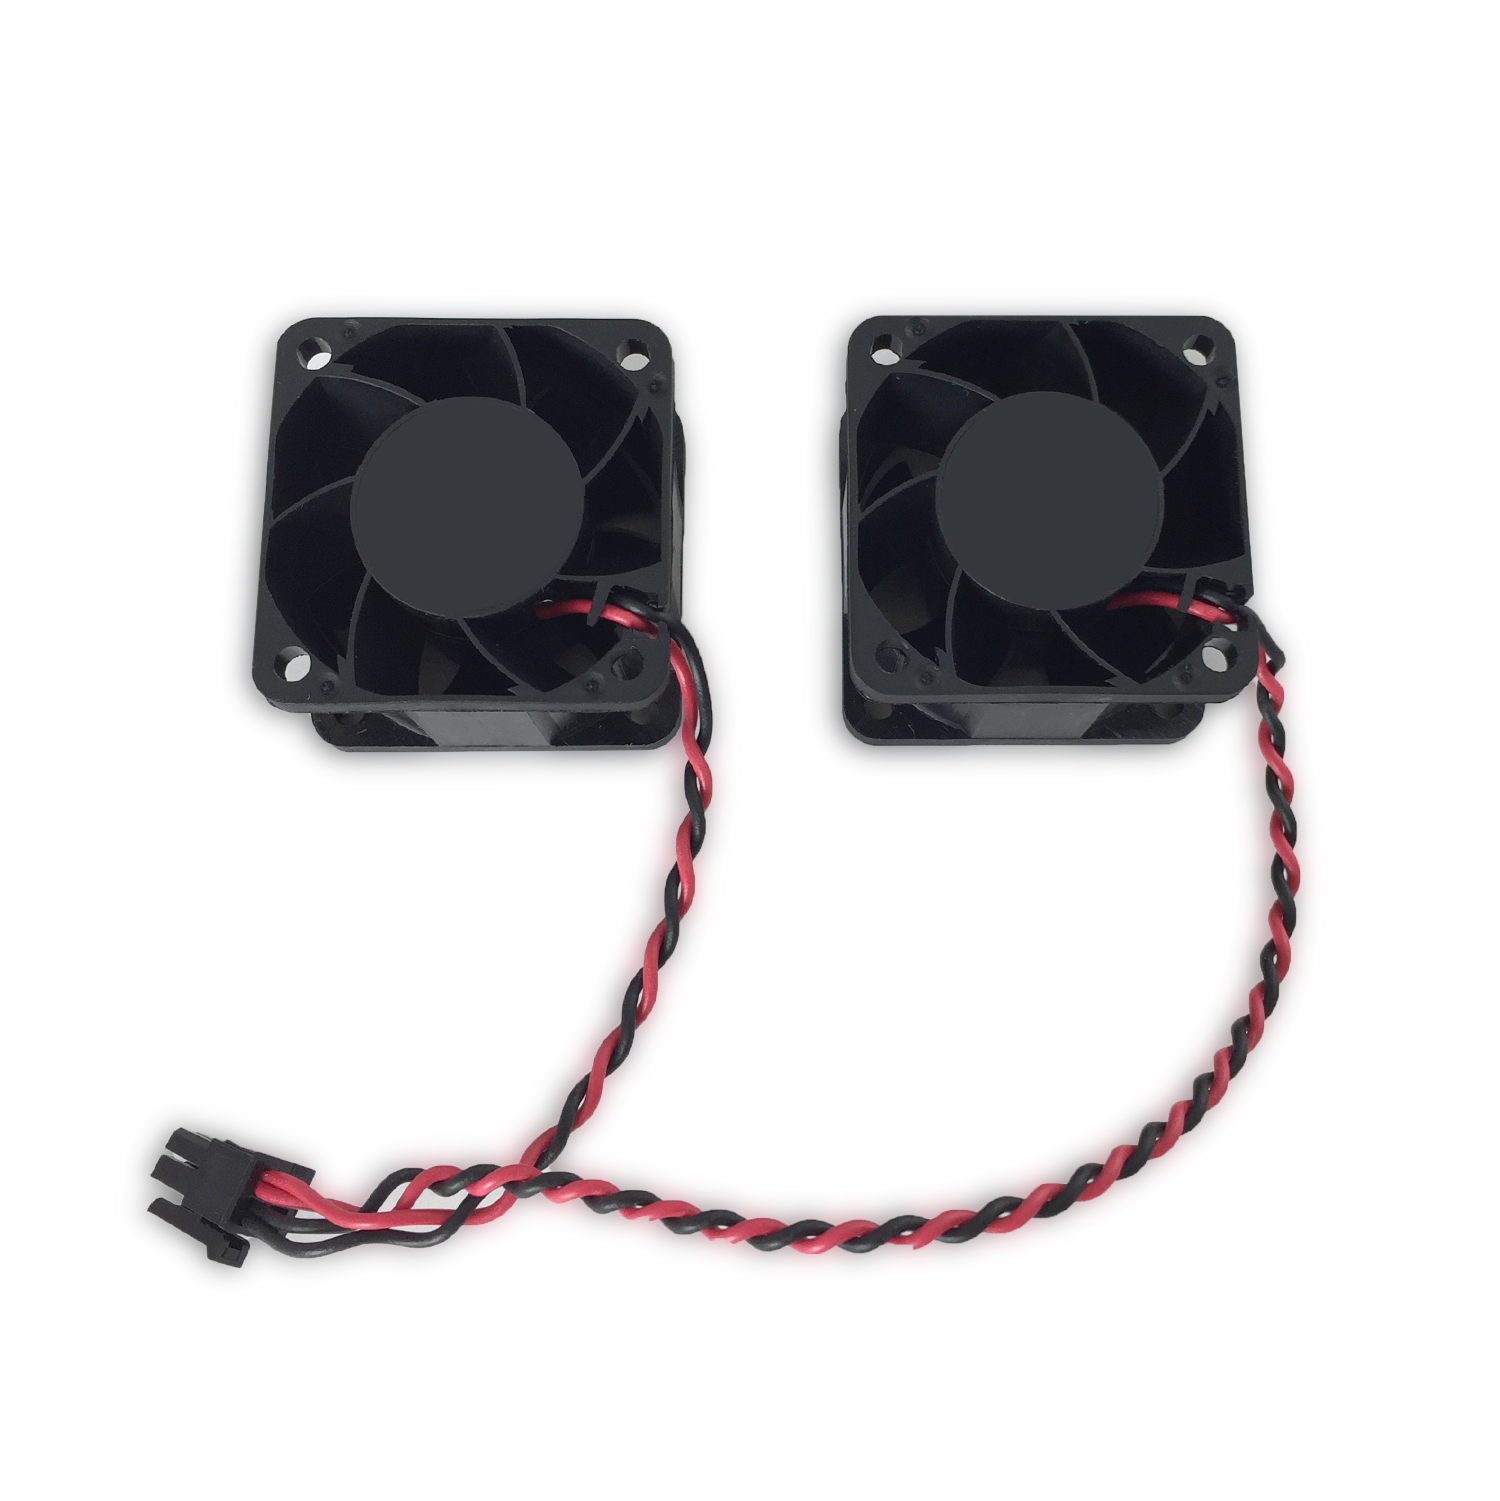 S2064: Cooling Fan, 40 mm, for G2xxx/L2xxx DAS, bottom side